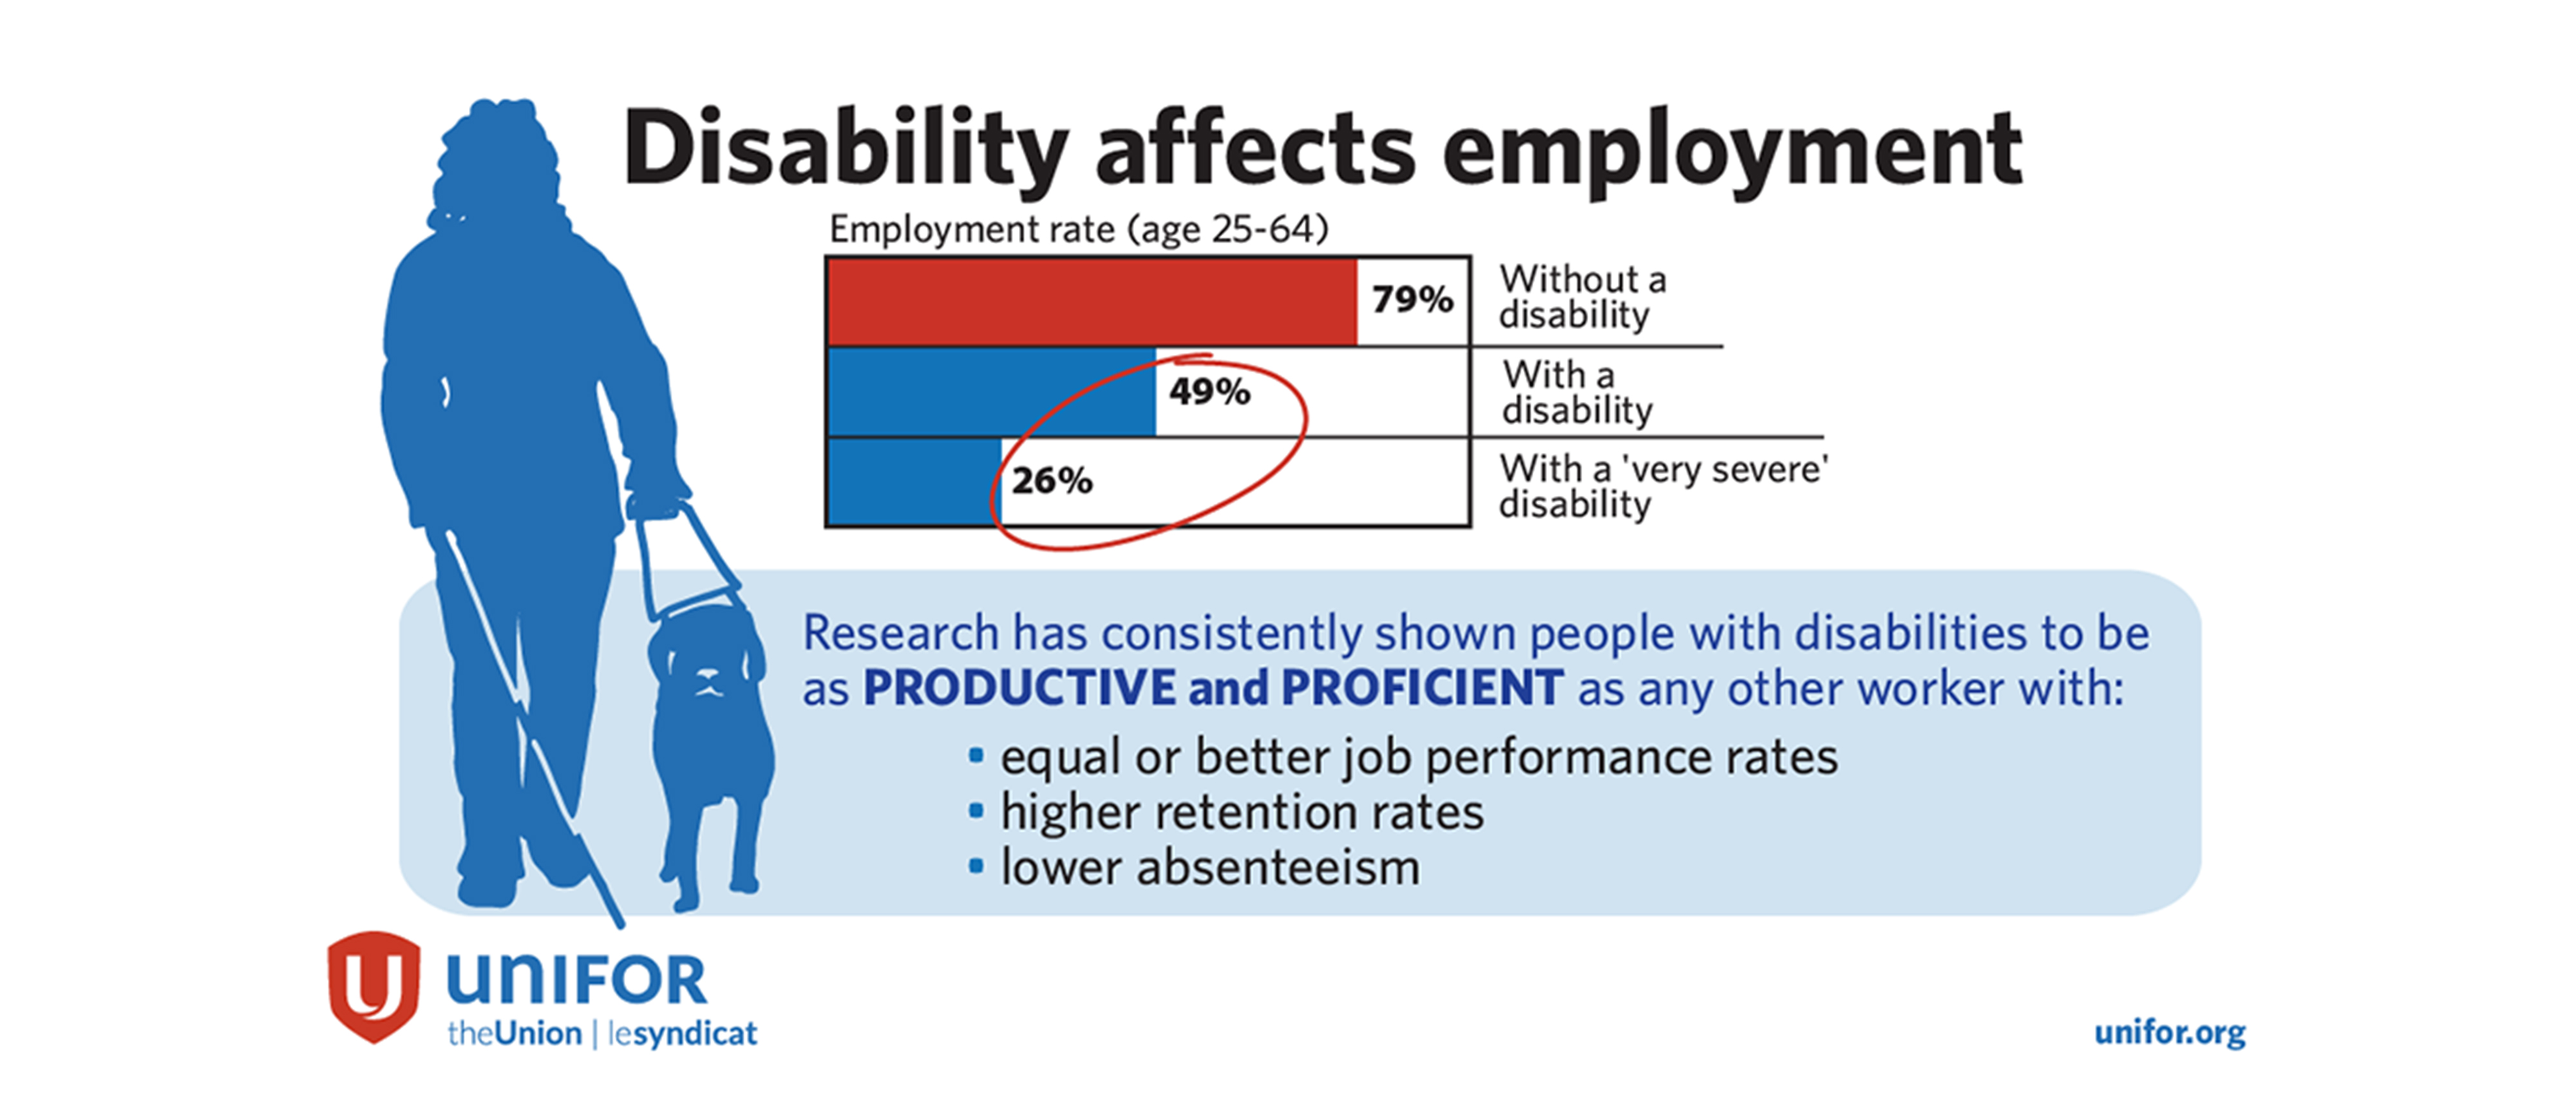 Infographic detailing how disability affects employment